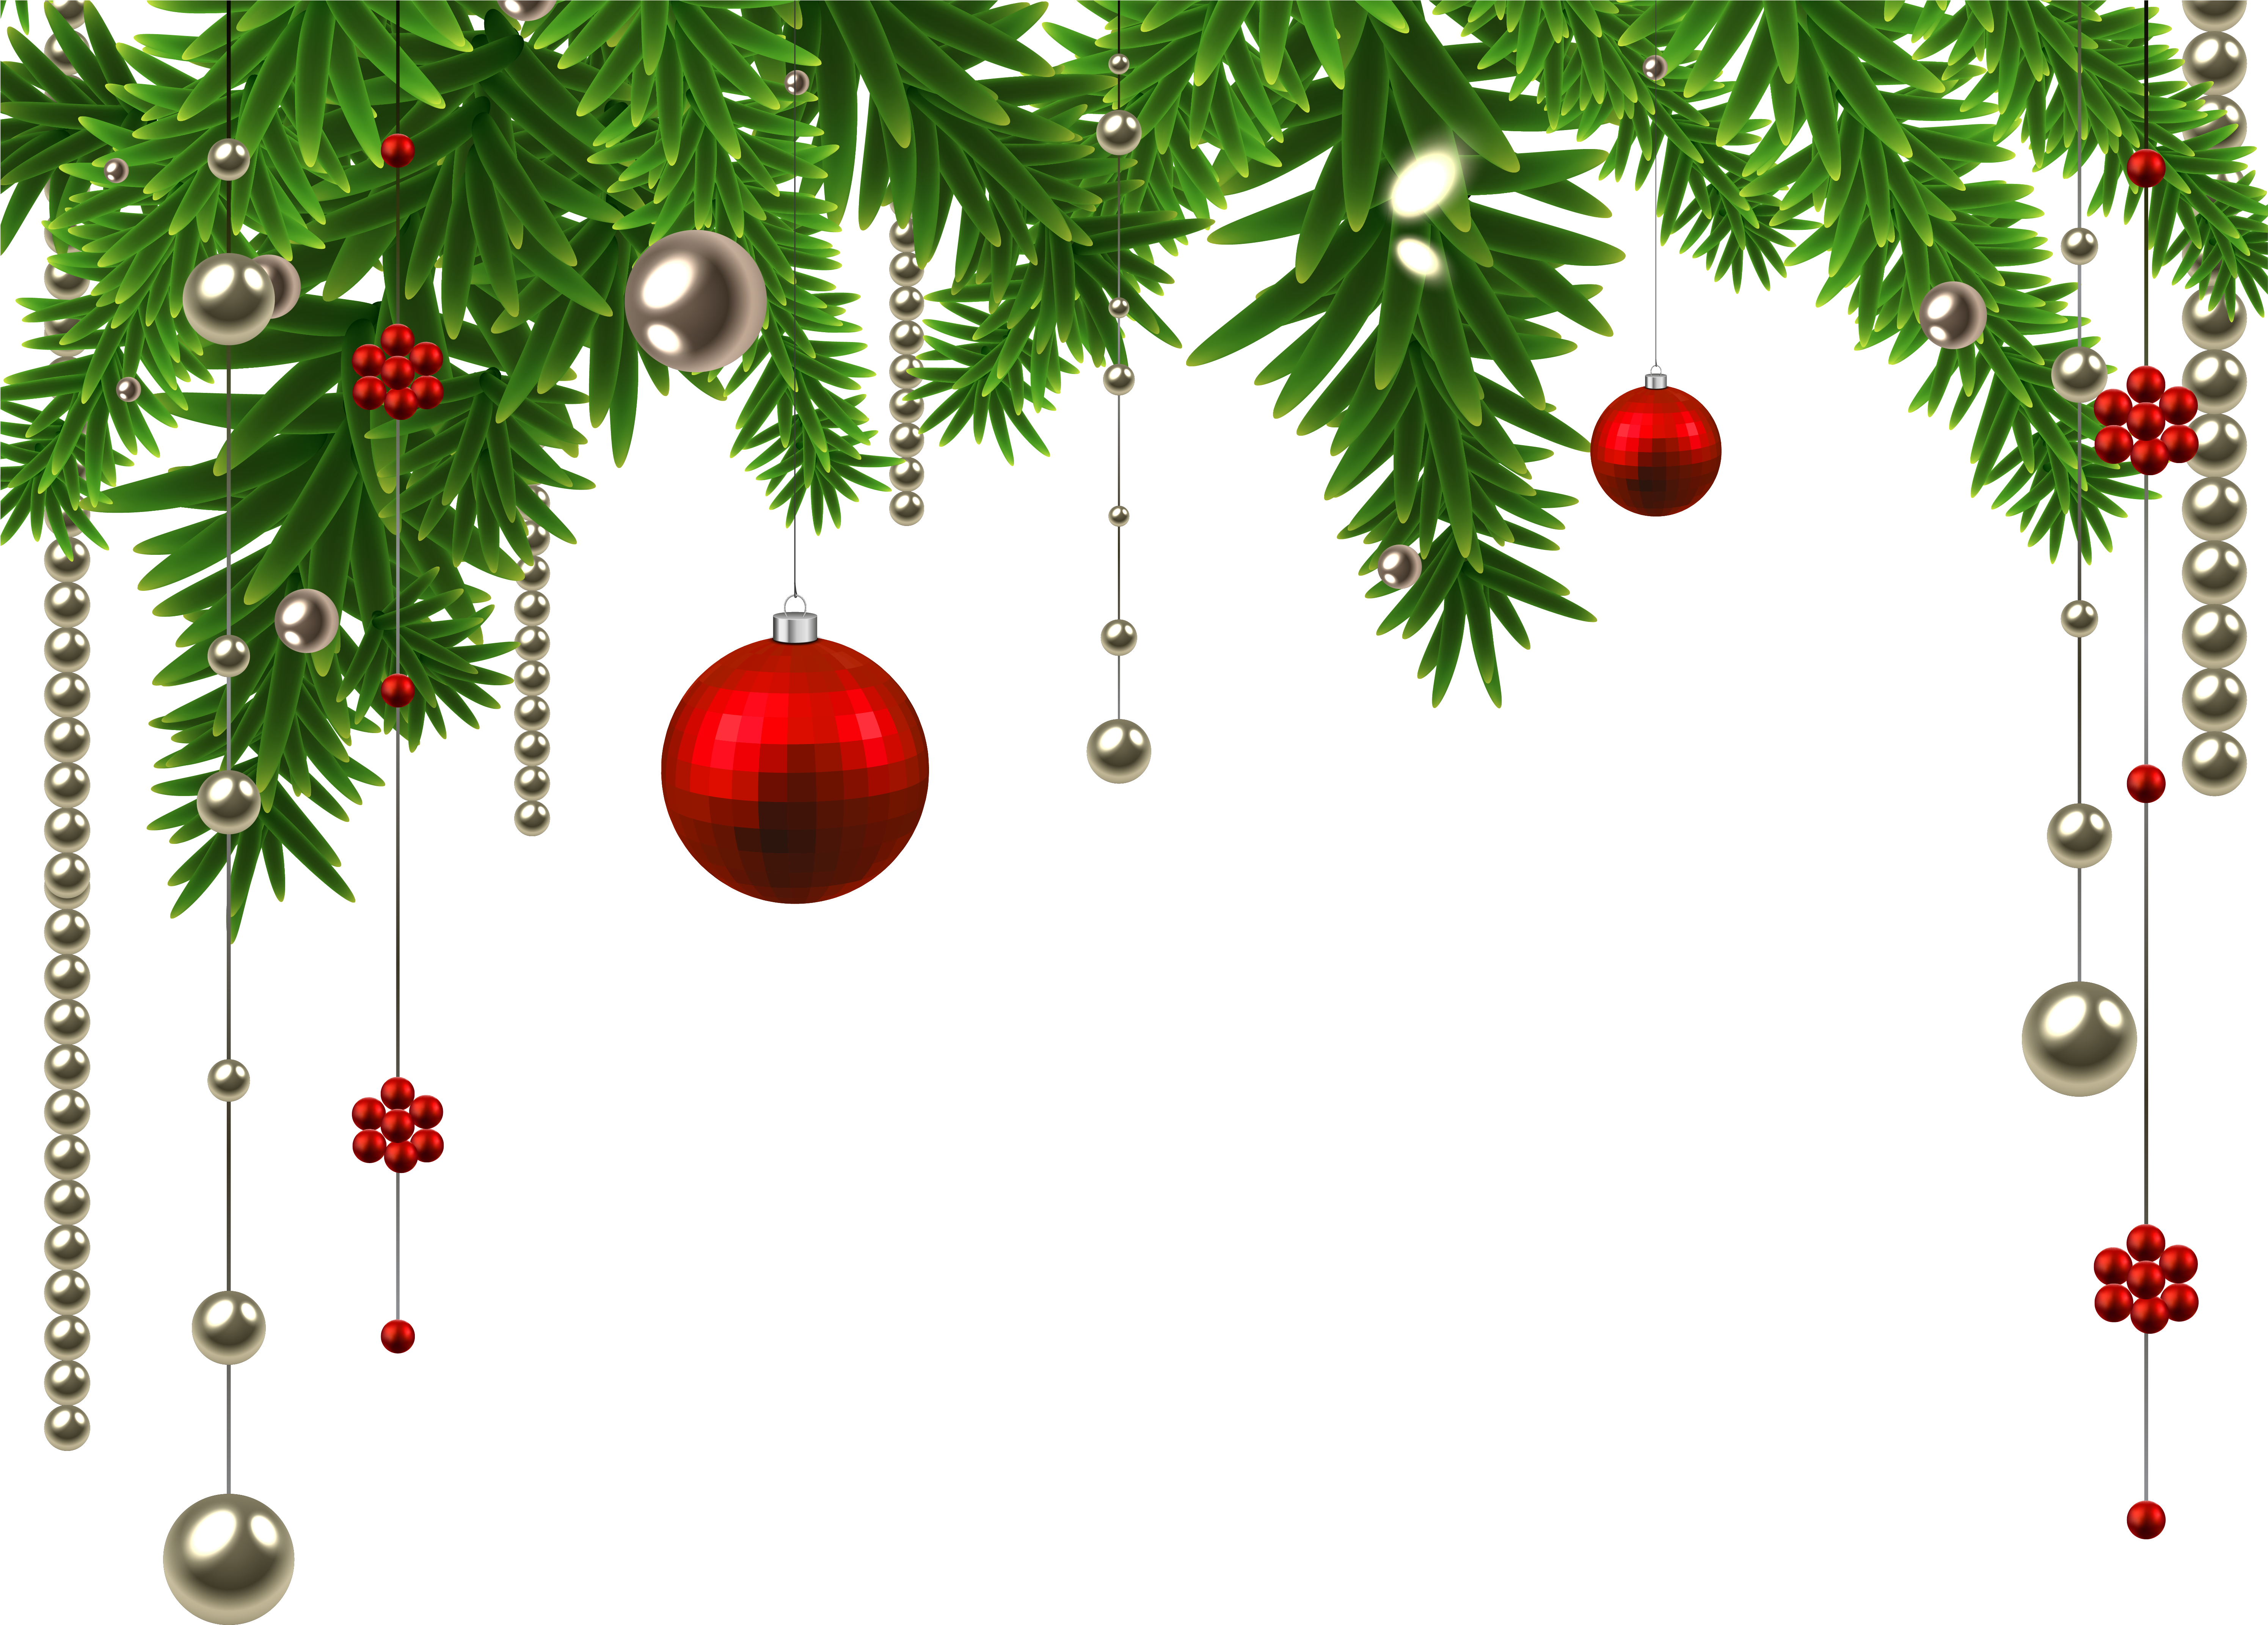 HD Svg Freeuse Library Collection Of Christmas Decorations.